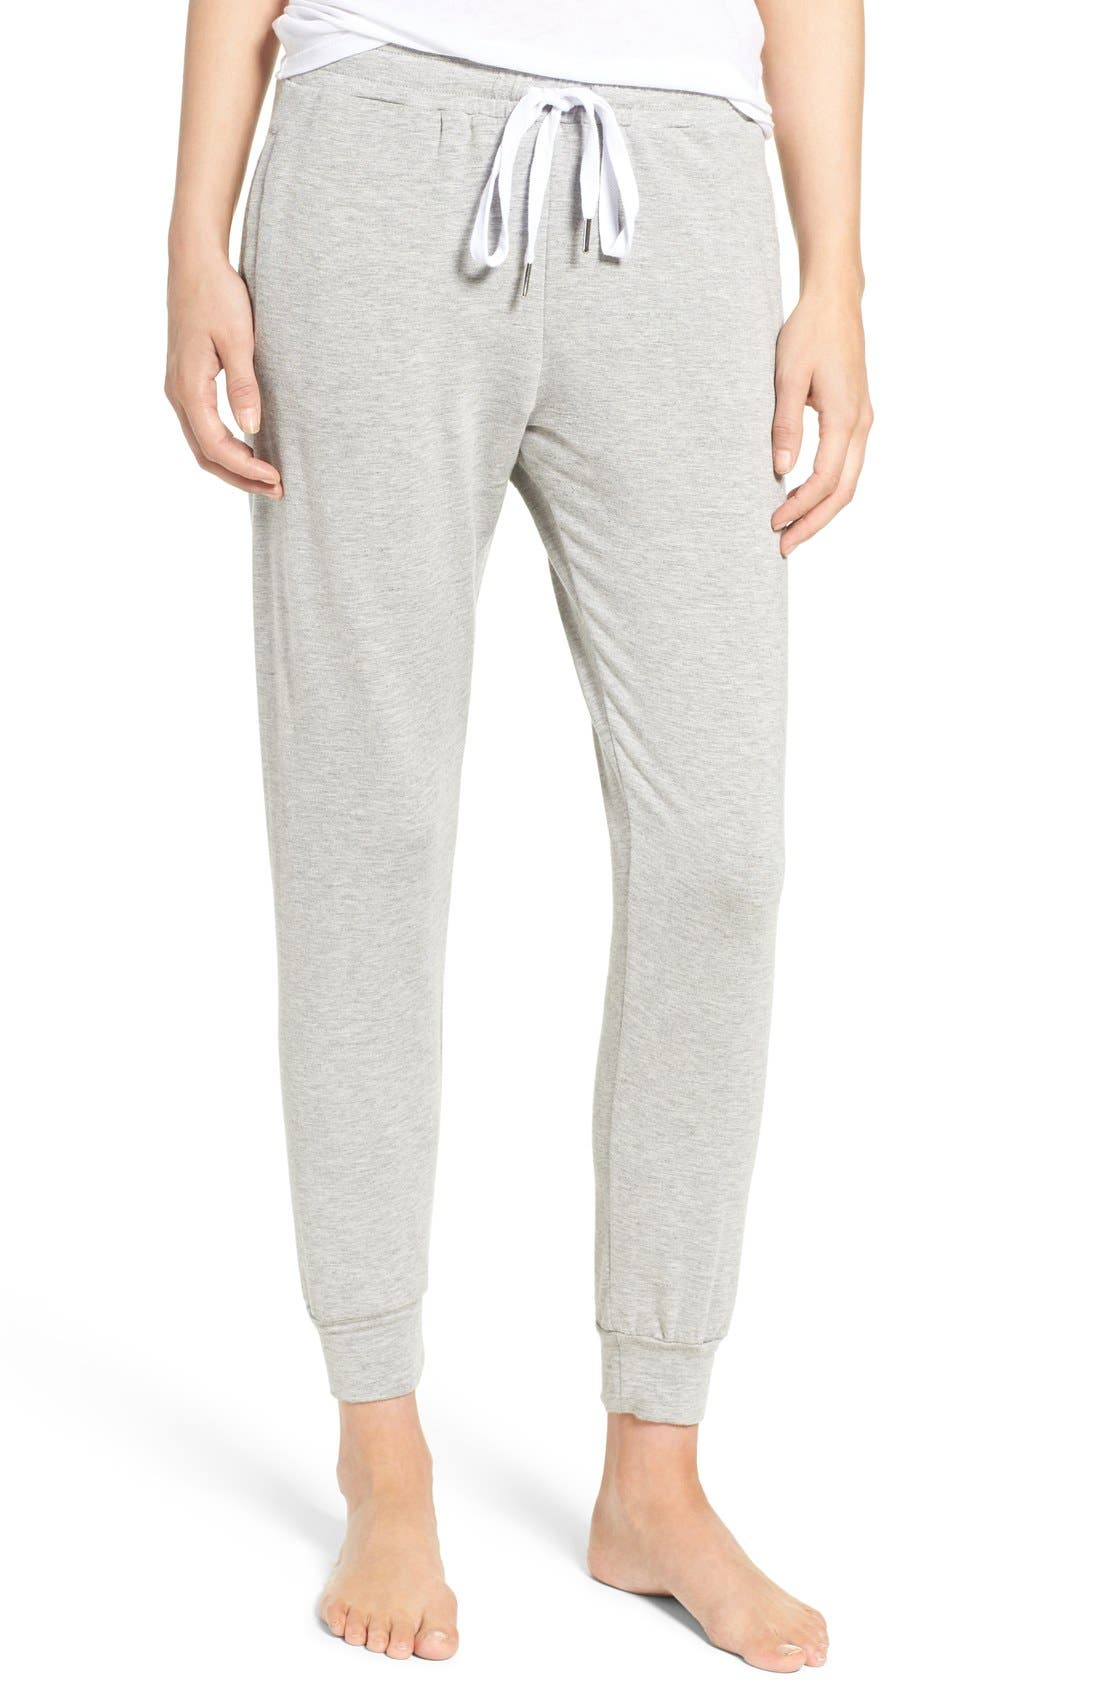 Alternate Image 1 Selected - The Laundry Room Lounge Pants